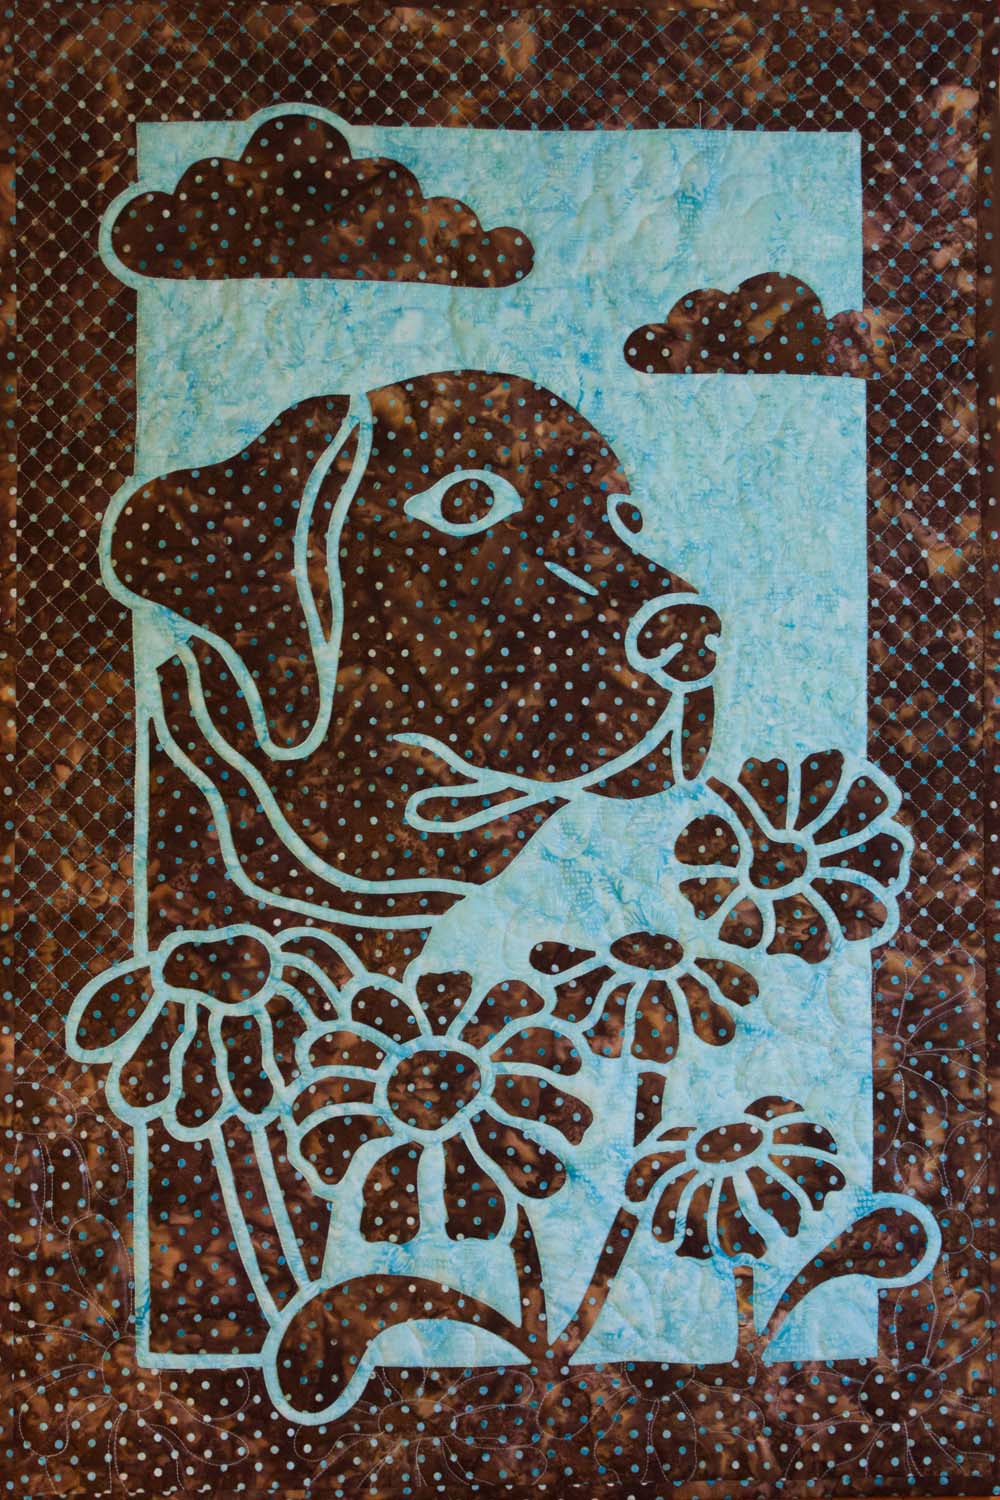 Dog and Daisy 2 Fabric Applique Quilt Pattern